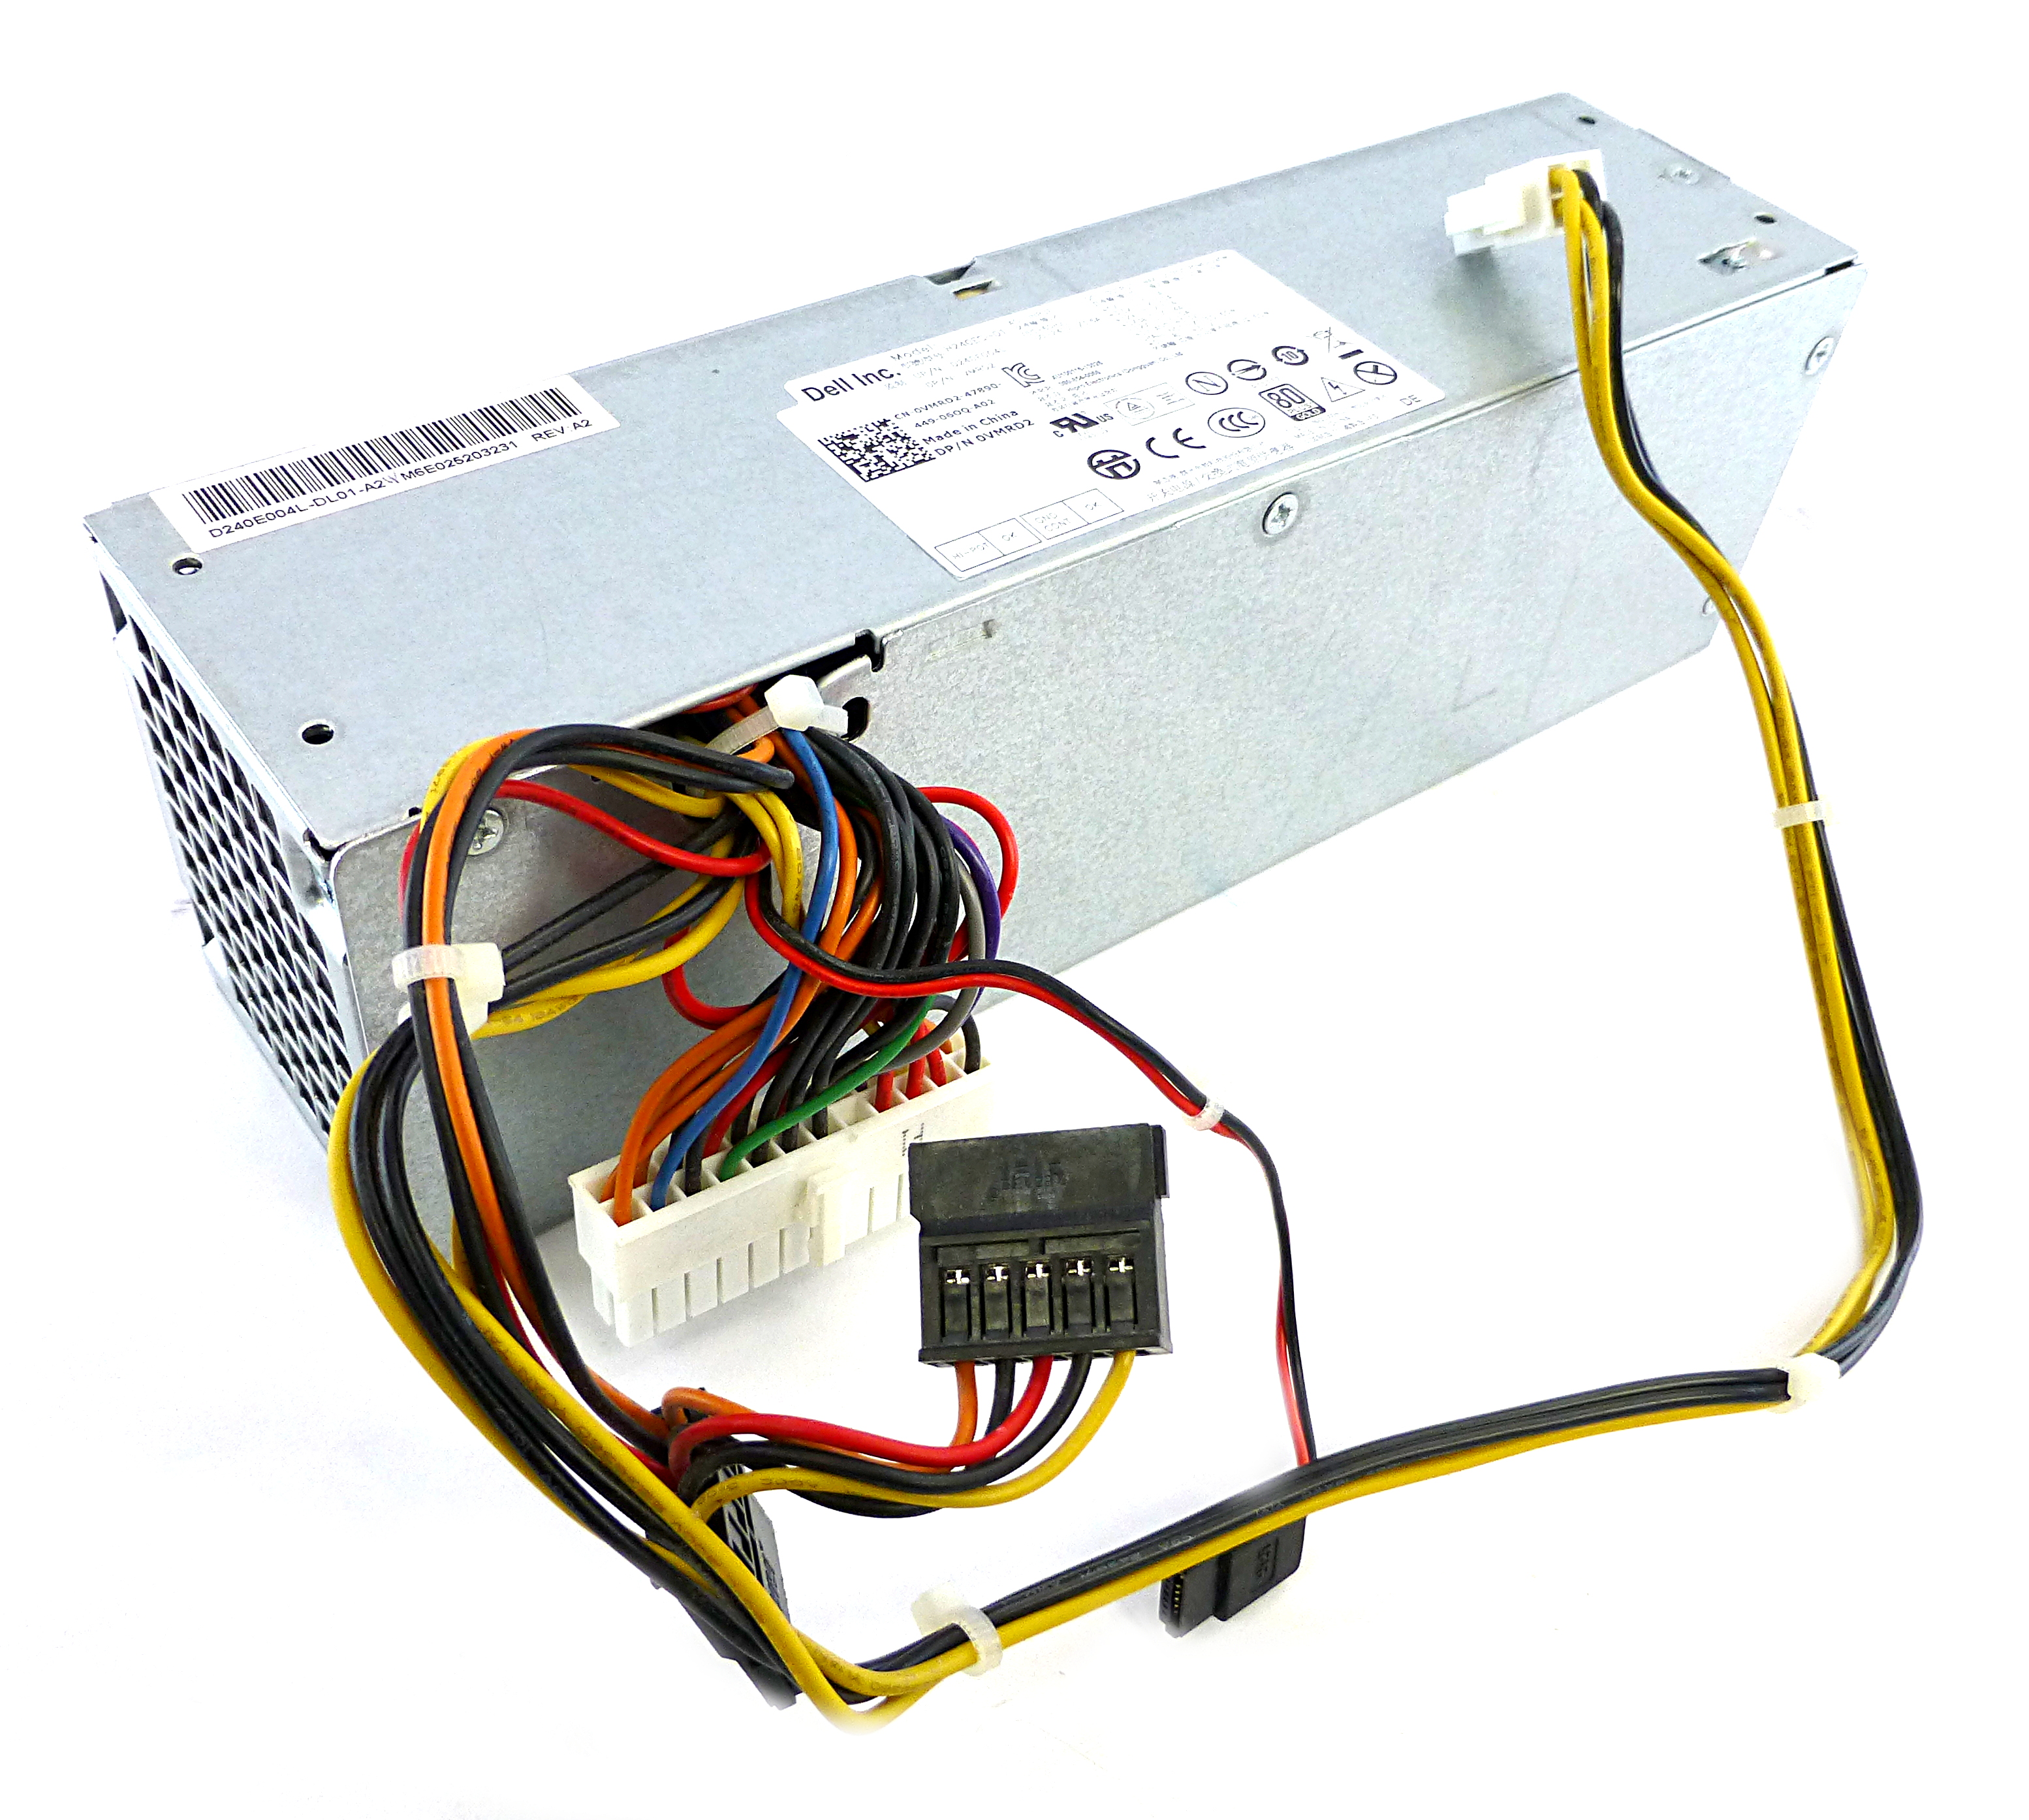 Dell 709MT Optiplex 790/990 SFF 240W 24-Pin Power Supply - Model H240ES-01 VMRD2